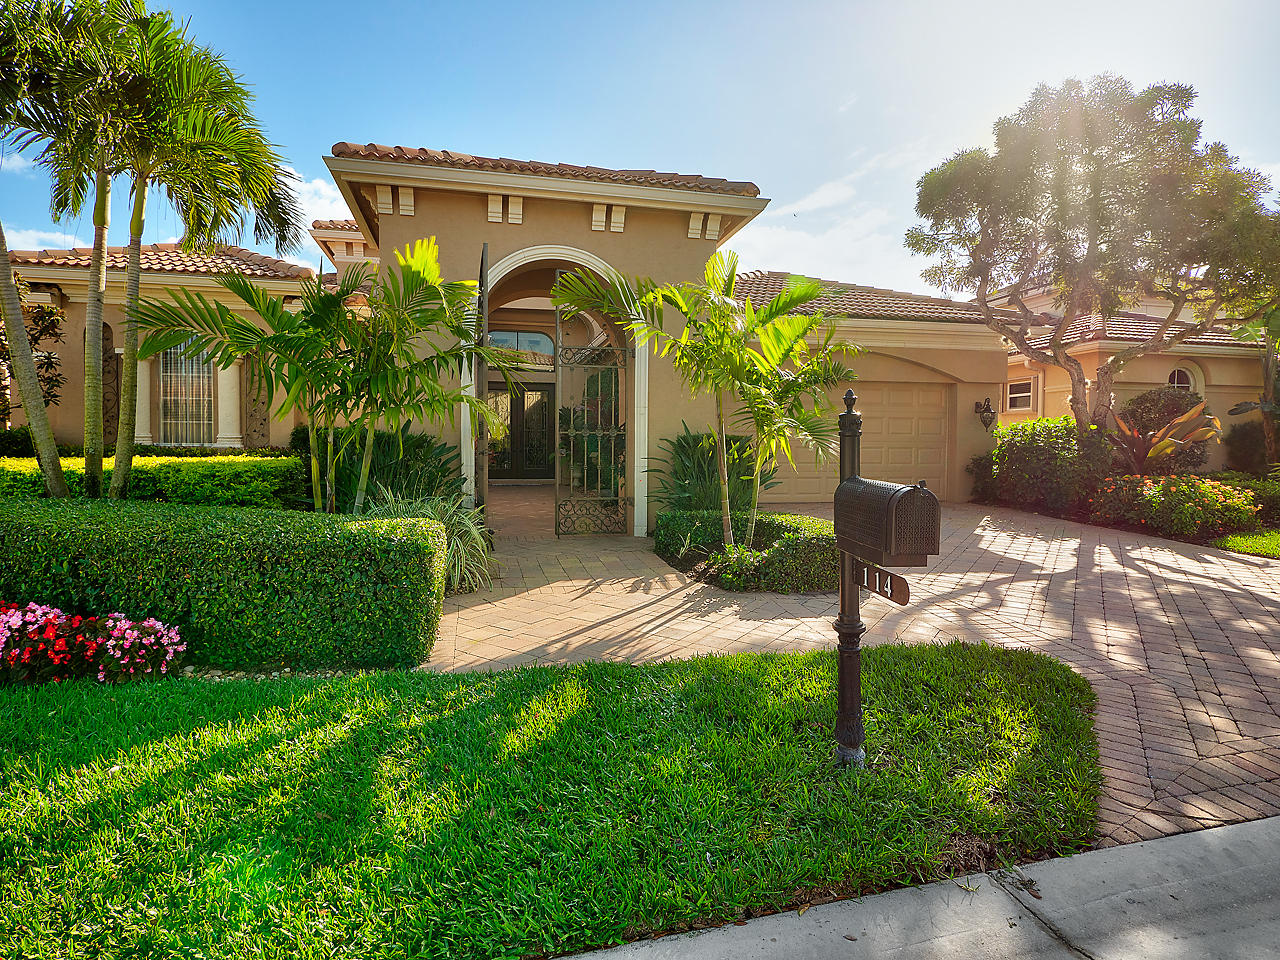 Home for sale in Sunesta Cove Palm Beach Gardens Florida